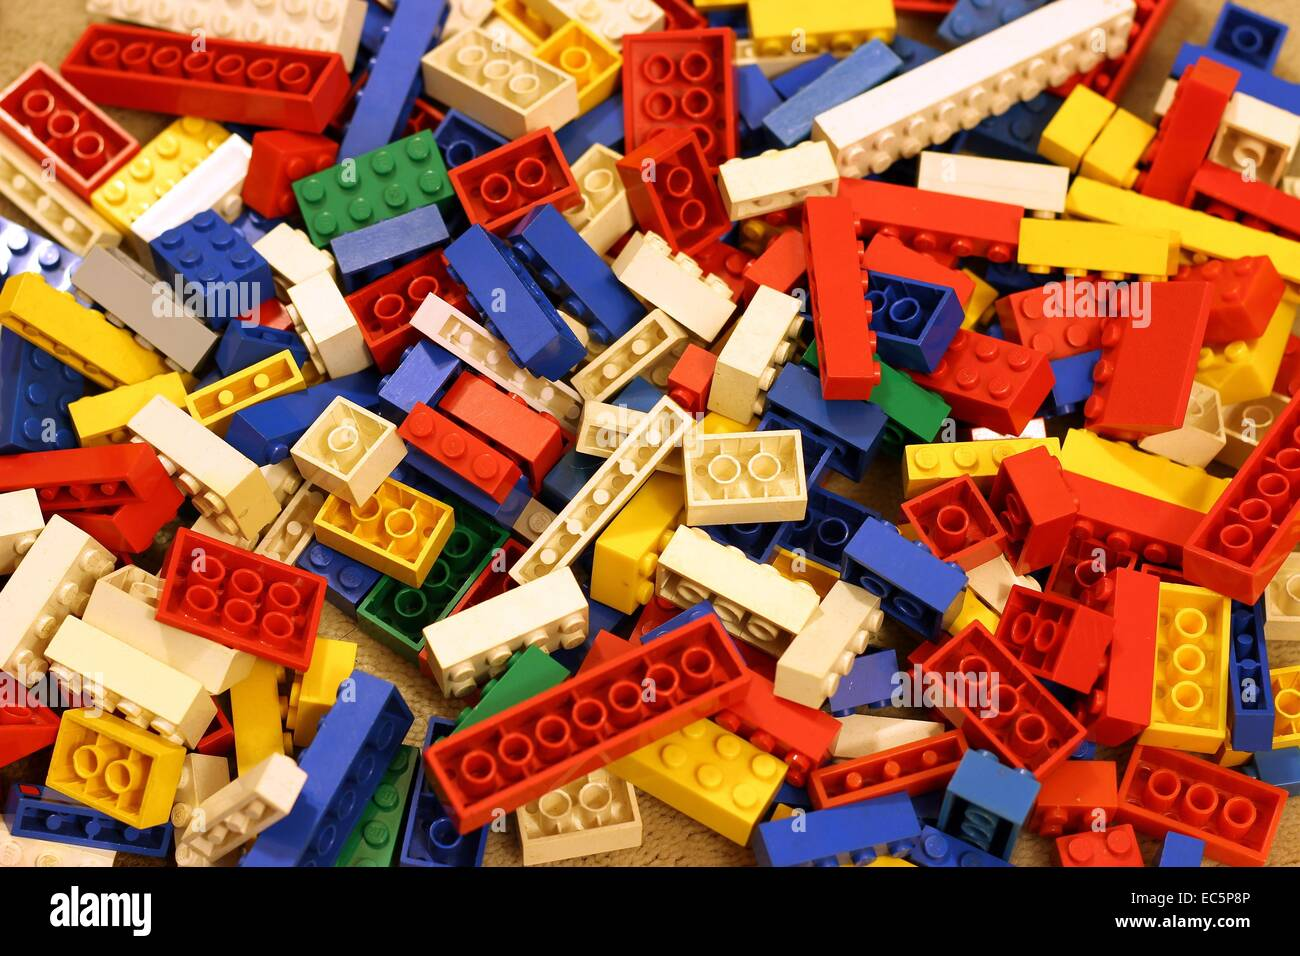 Lego Teppich Lego Stock Photos & Lego Stock Images - Alamy